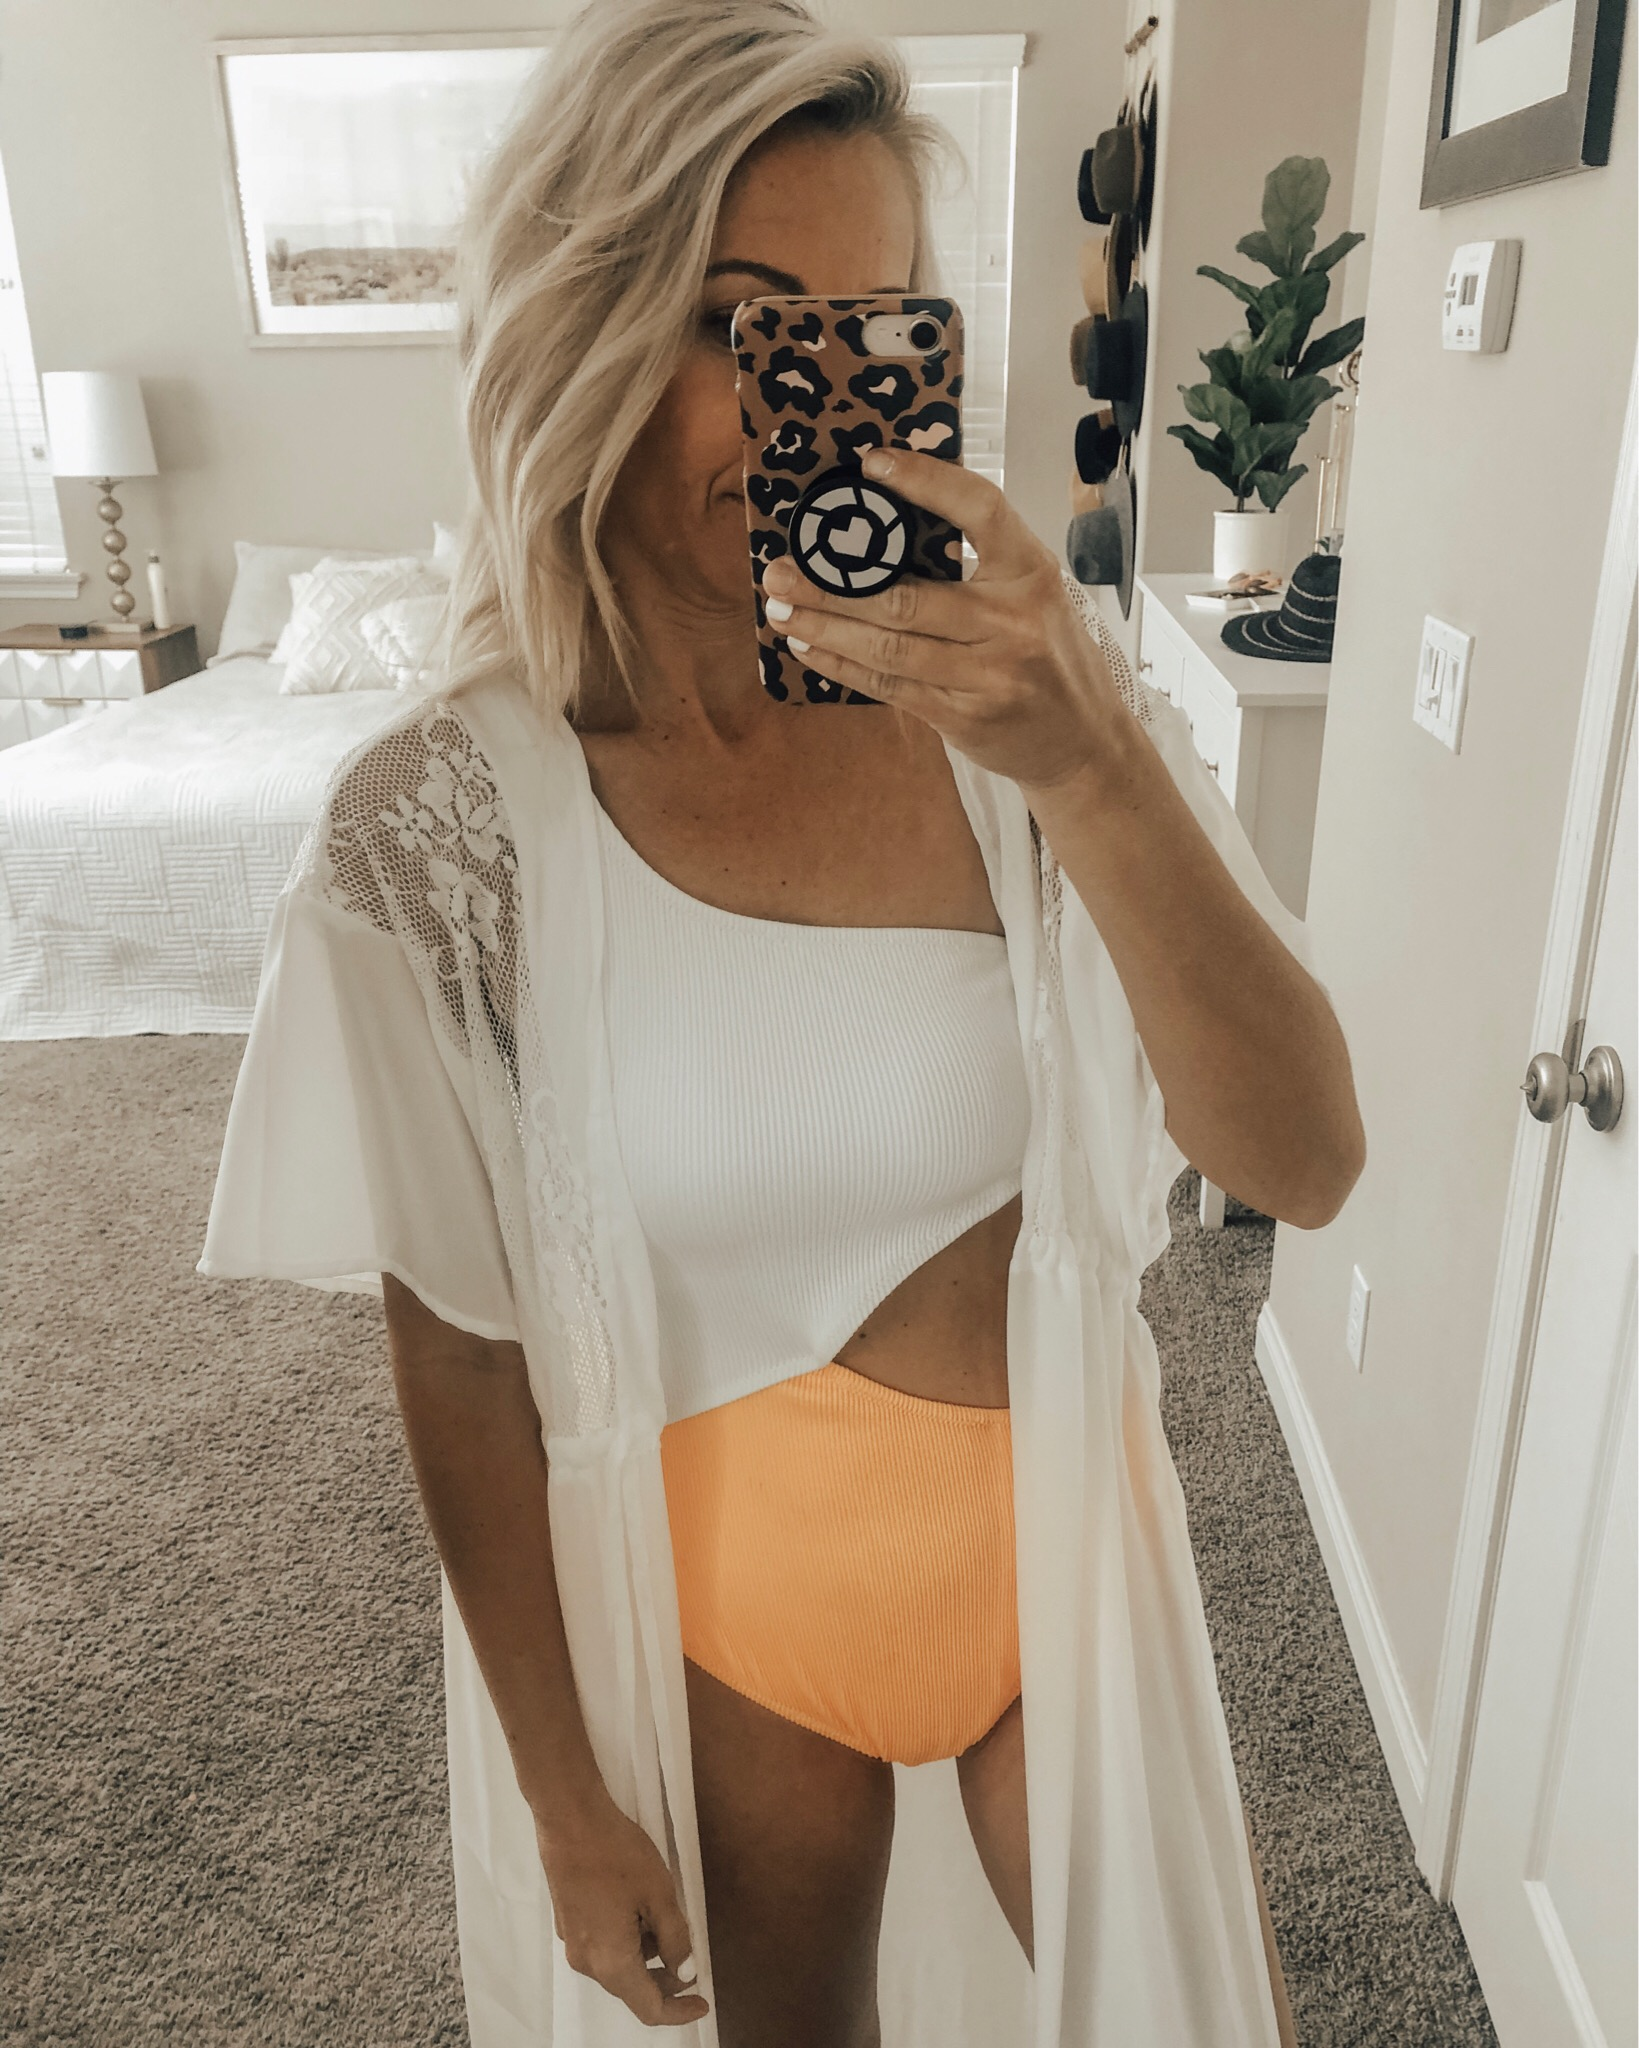 AMAZON FINDS- Jaclyn De Leon Style + Must have items from sunglasses and a jewelry travel case to swimsuits and designer dupe handbags. All items are Amazon prime with free shipping and several are under $10. One stop shopping for all your needs